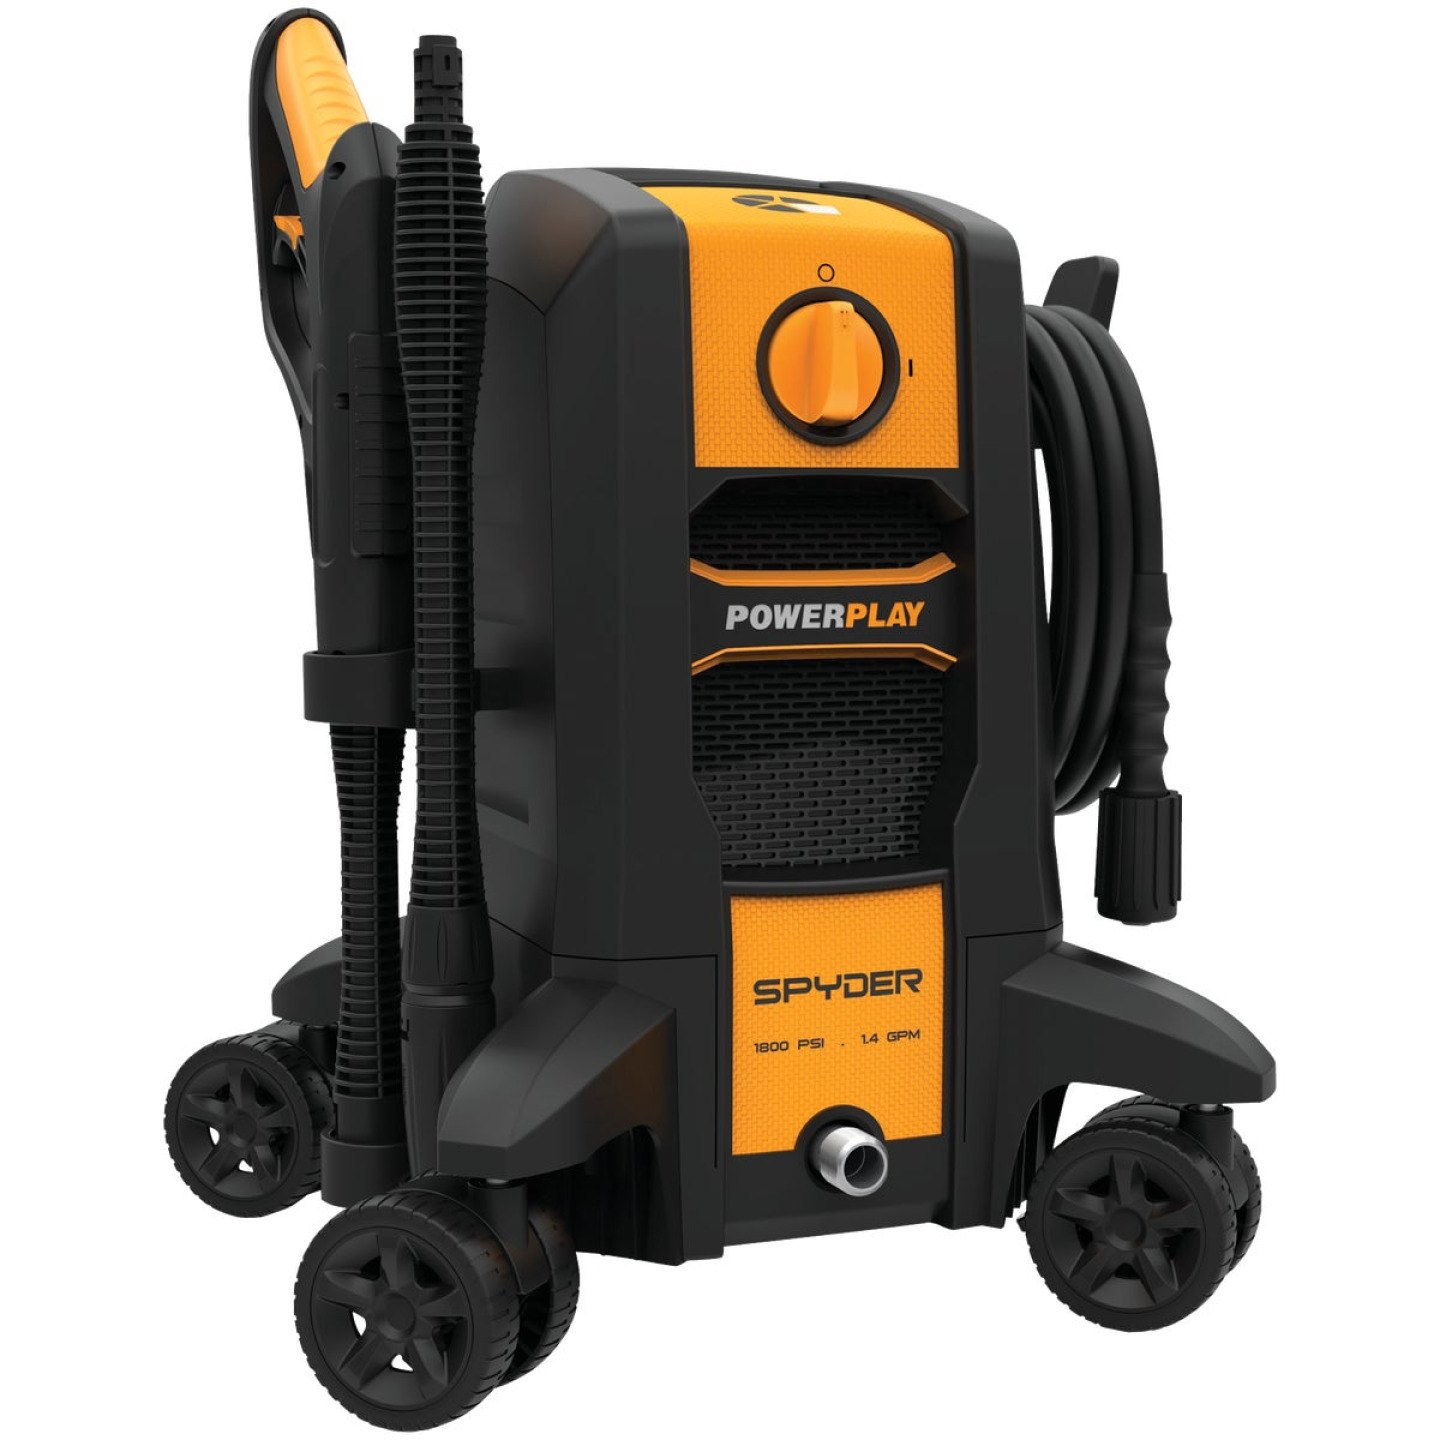 Powerplay Spyder 1800 psi 1.4 GPM Cold Water Electric Pressure Washer Image 1